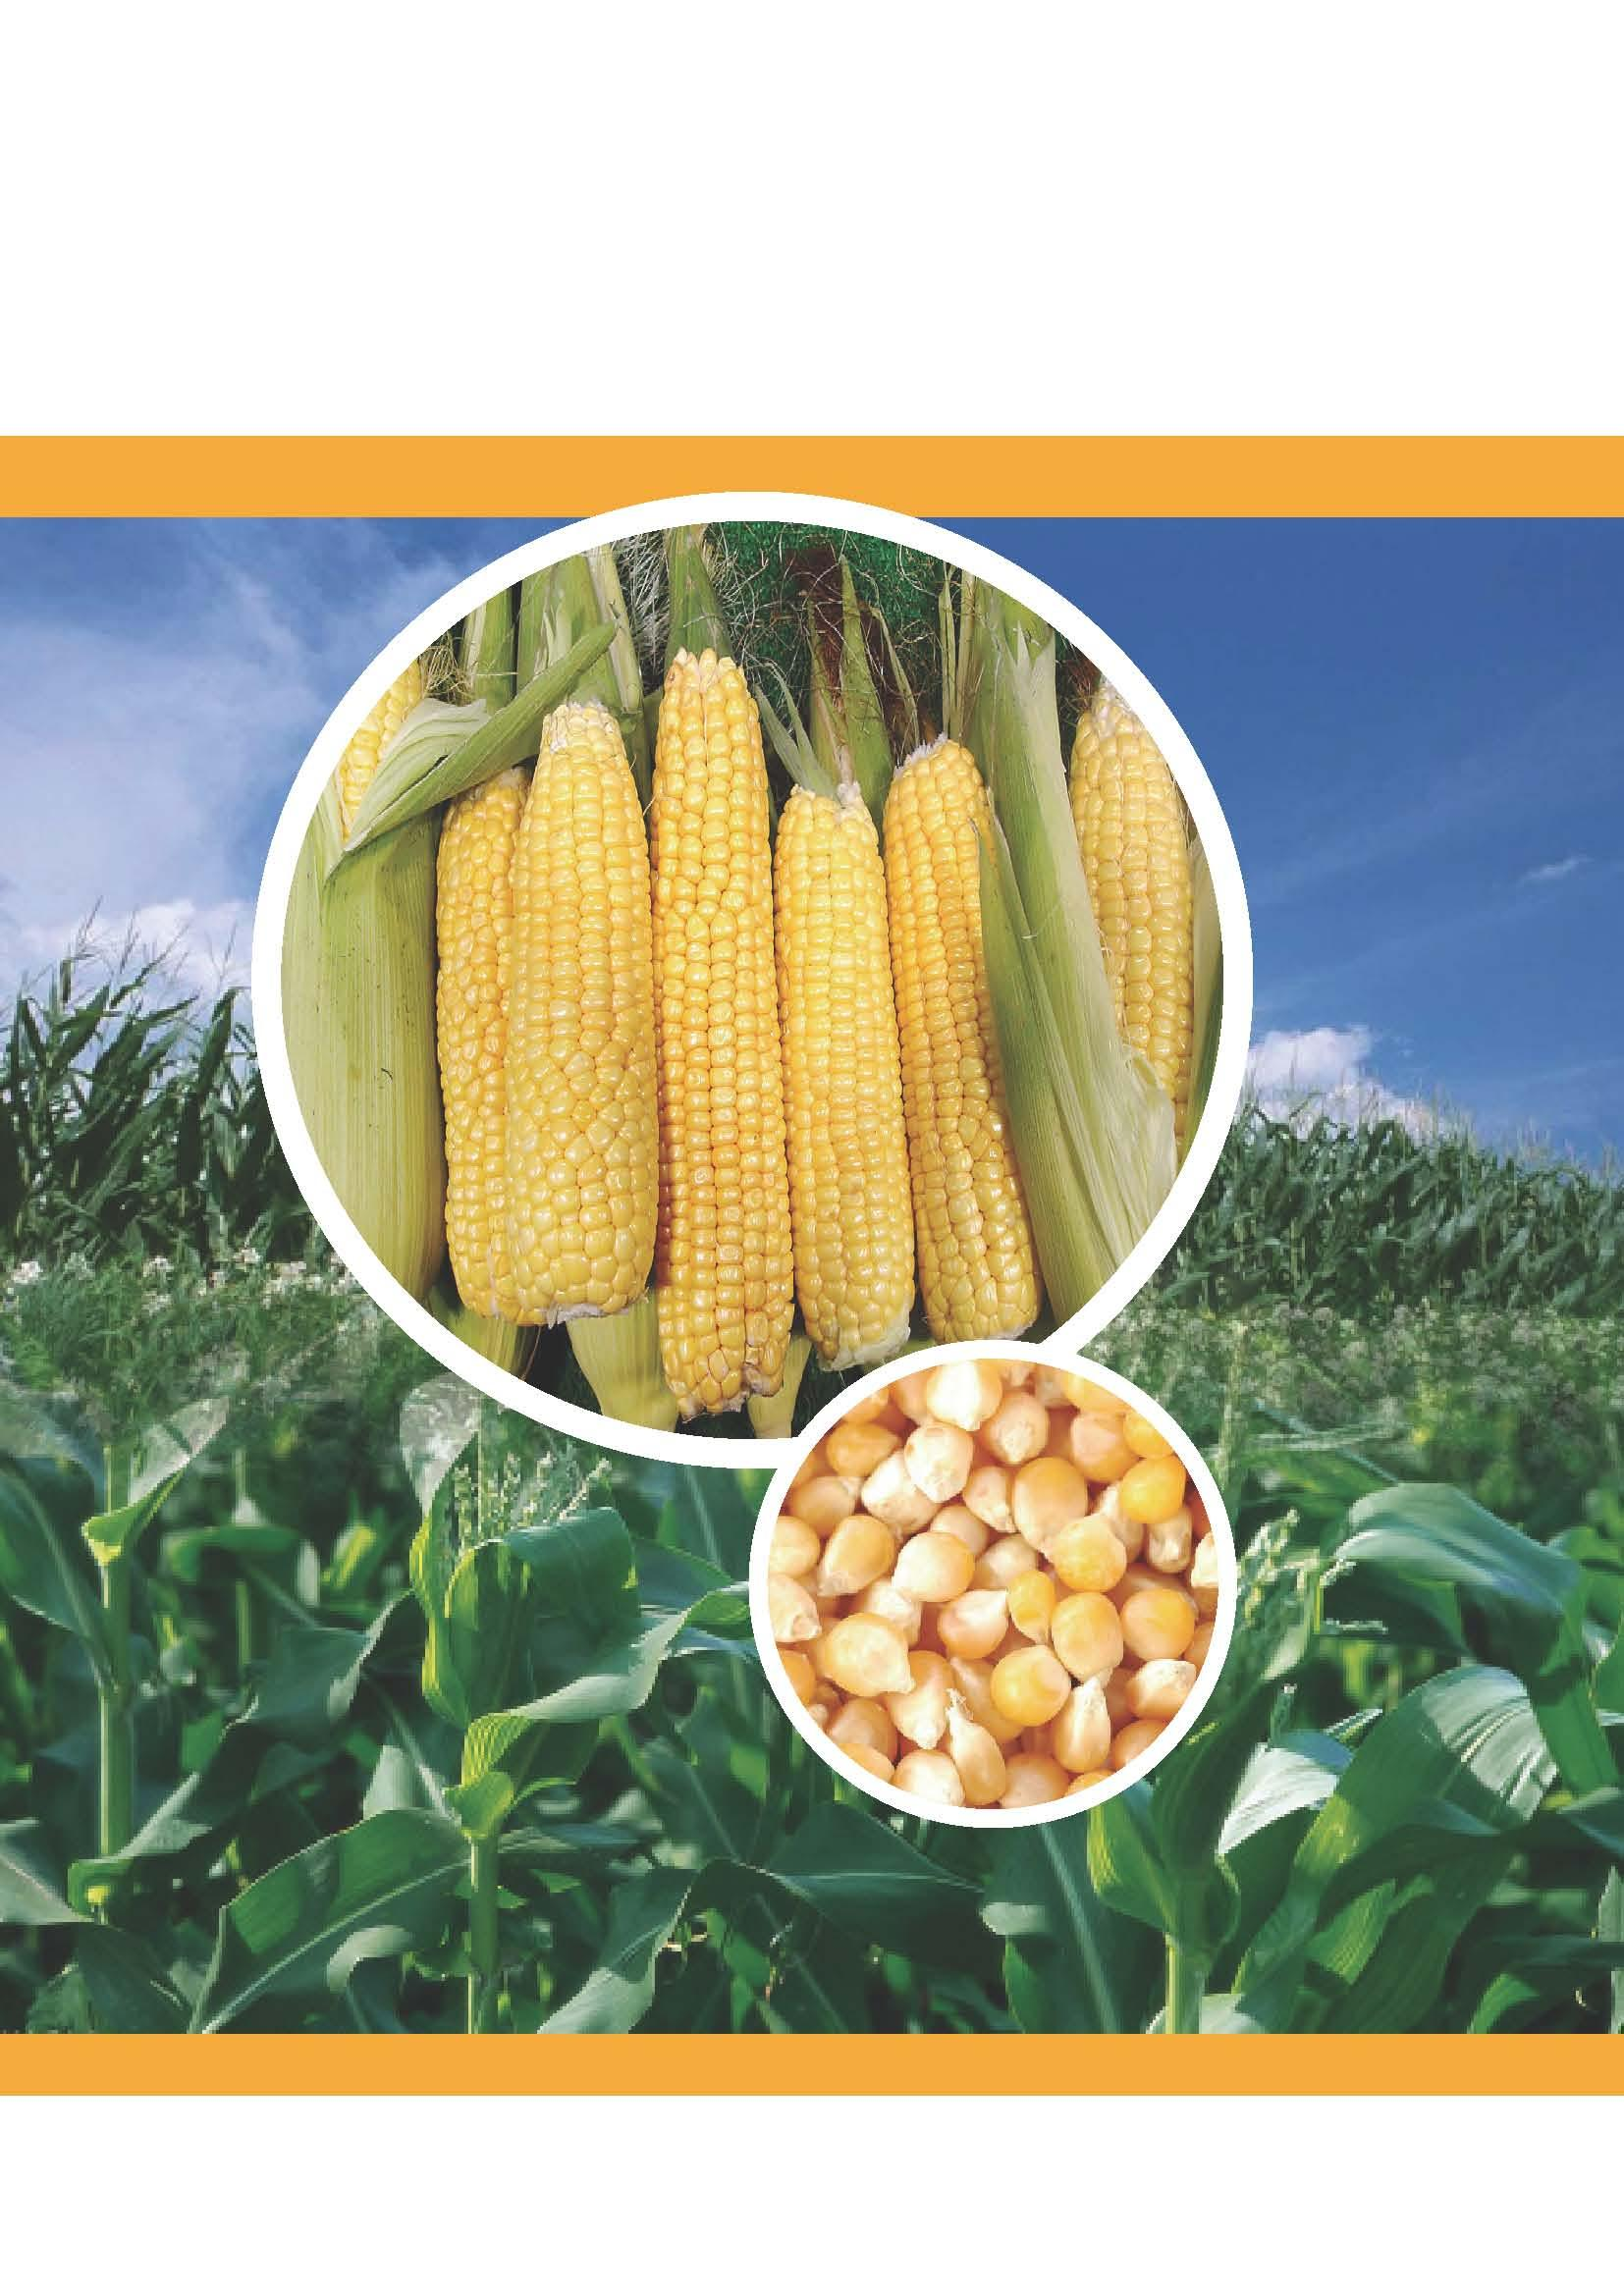 MOA issues Work Plan for Corn and Soybean Meal in Feed Production